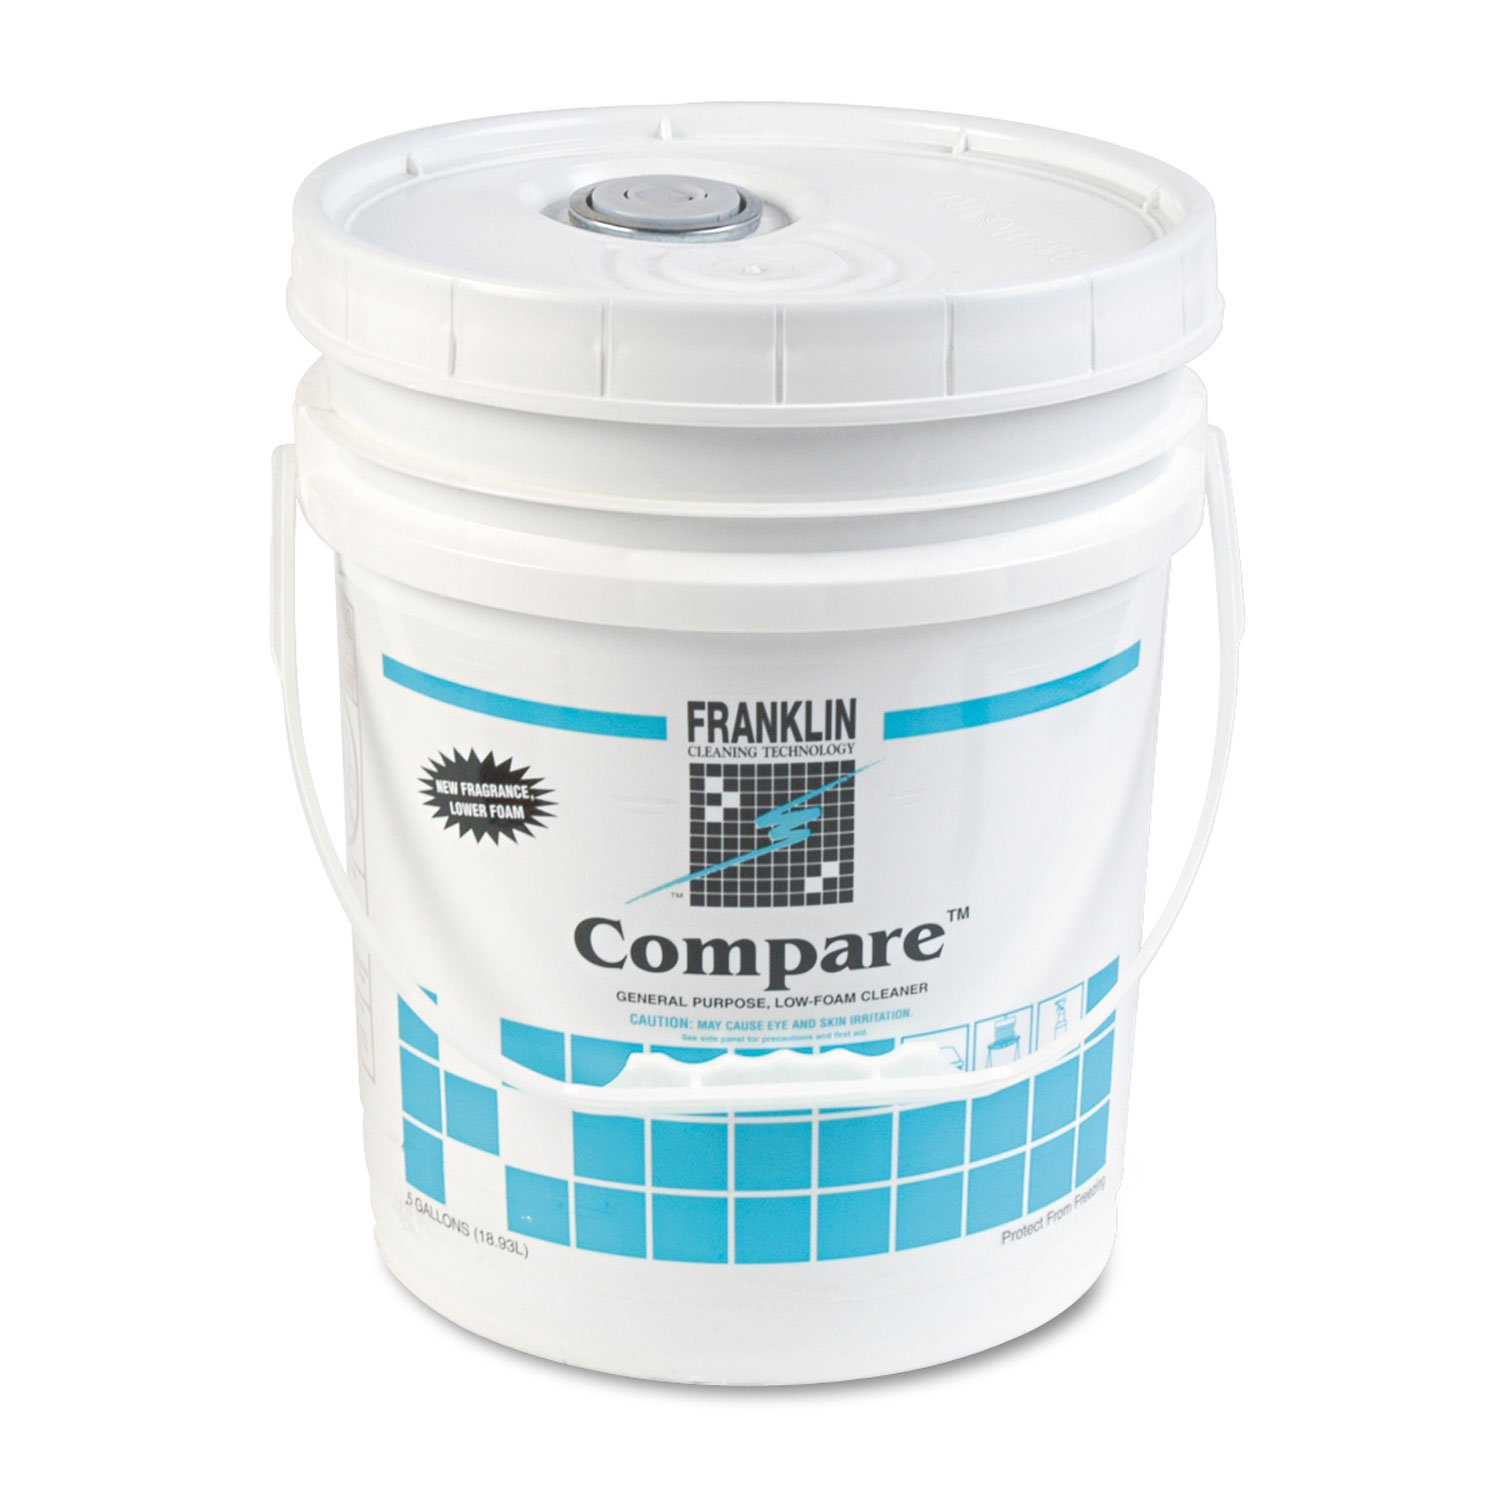 Franklin F216026 Compare Floor Cleaner, 5gal Pail